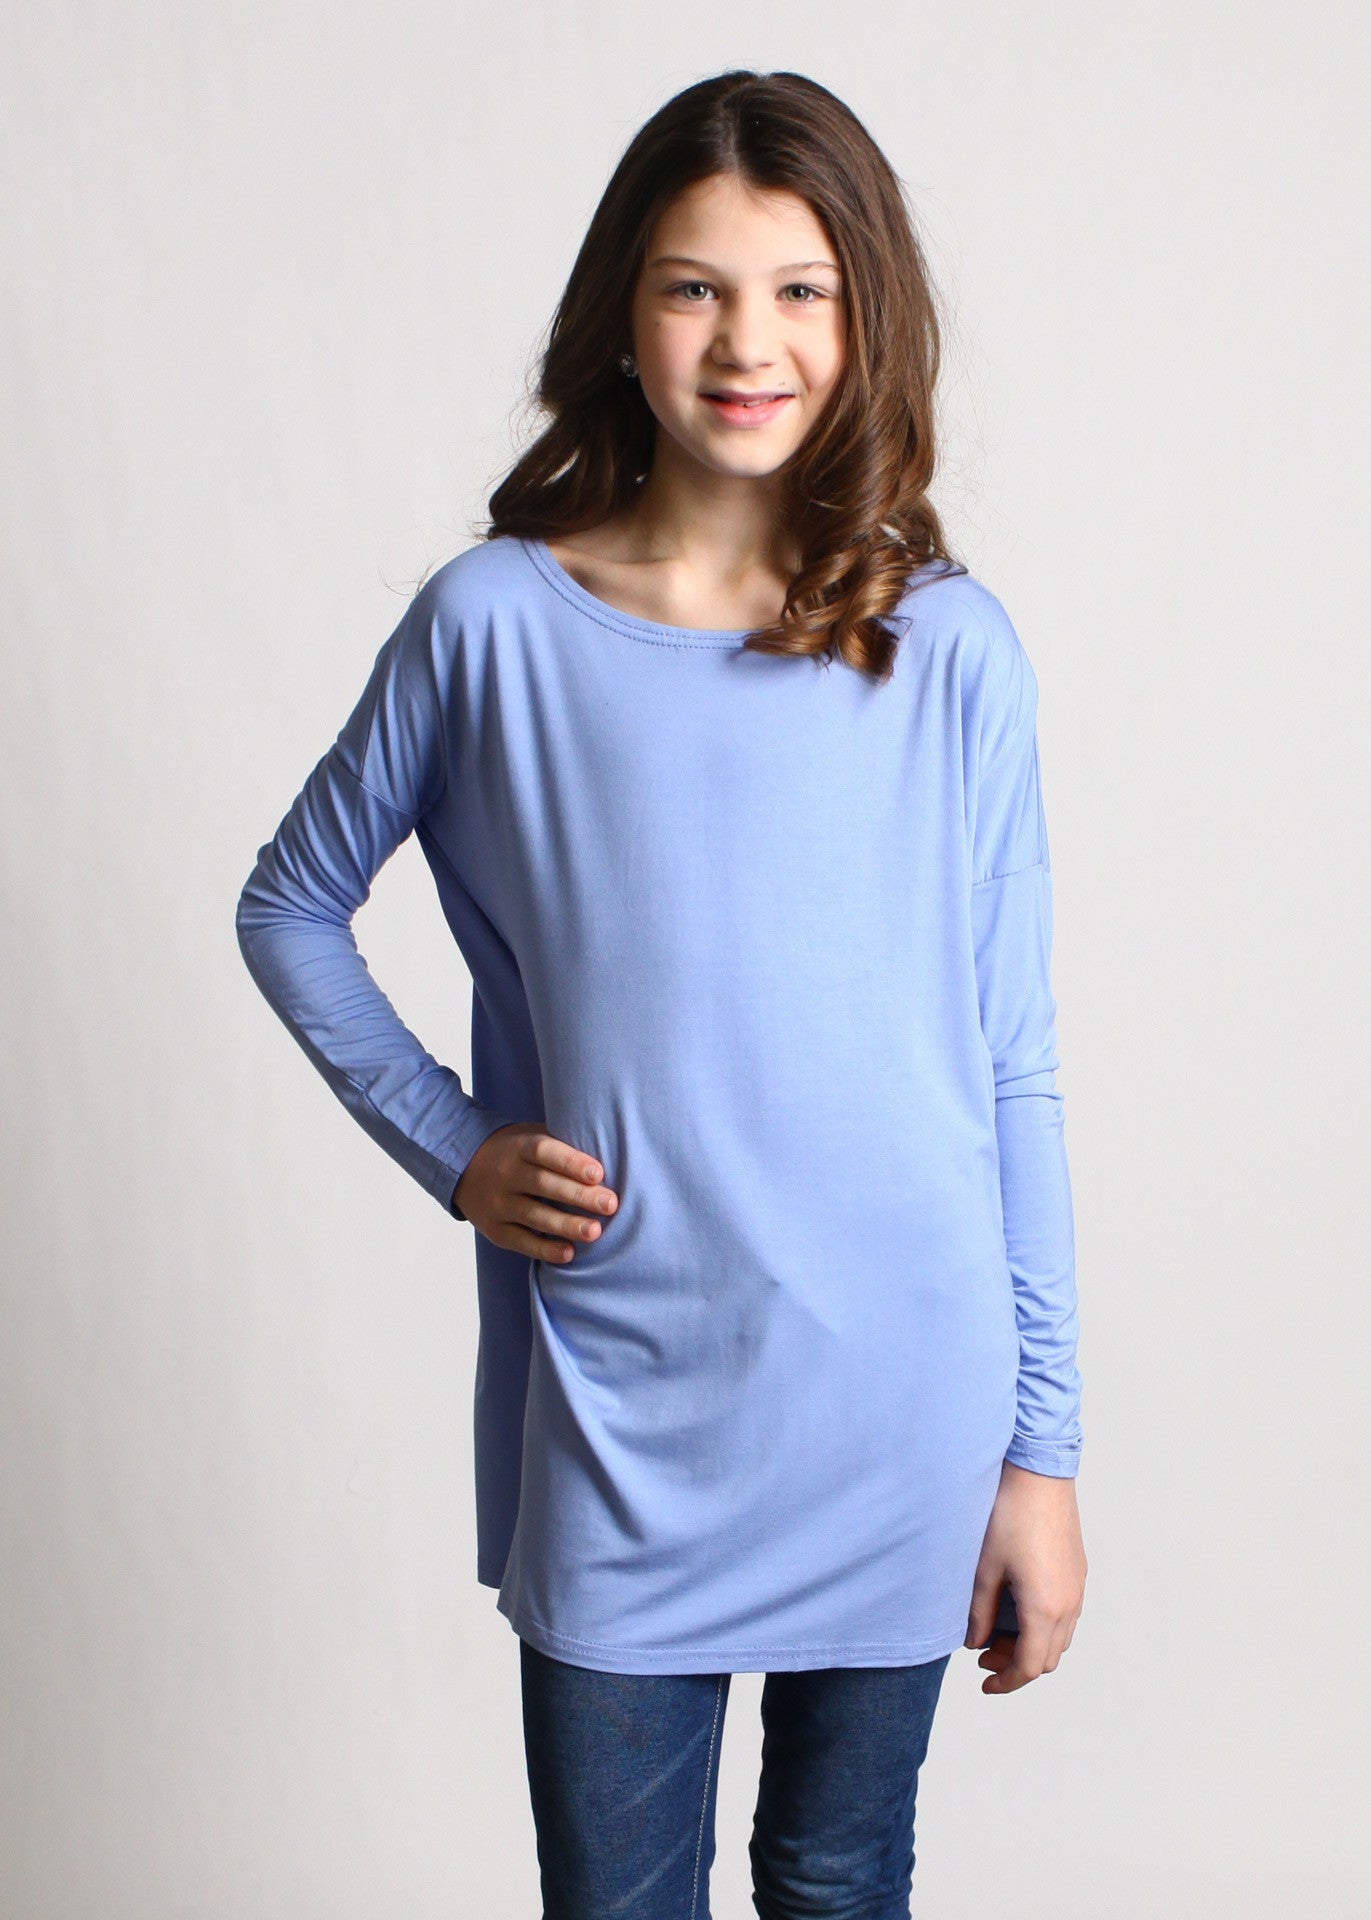 Original Kids Long Sleeve Top - Piko Clearance Center - 7